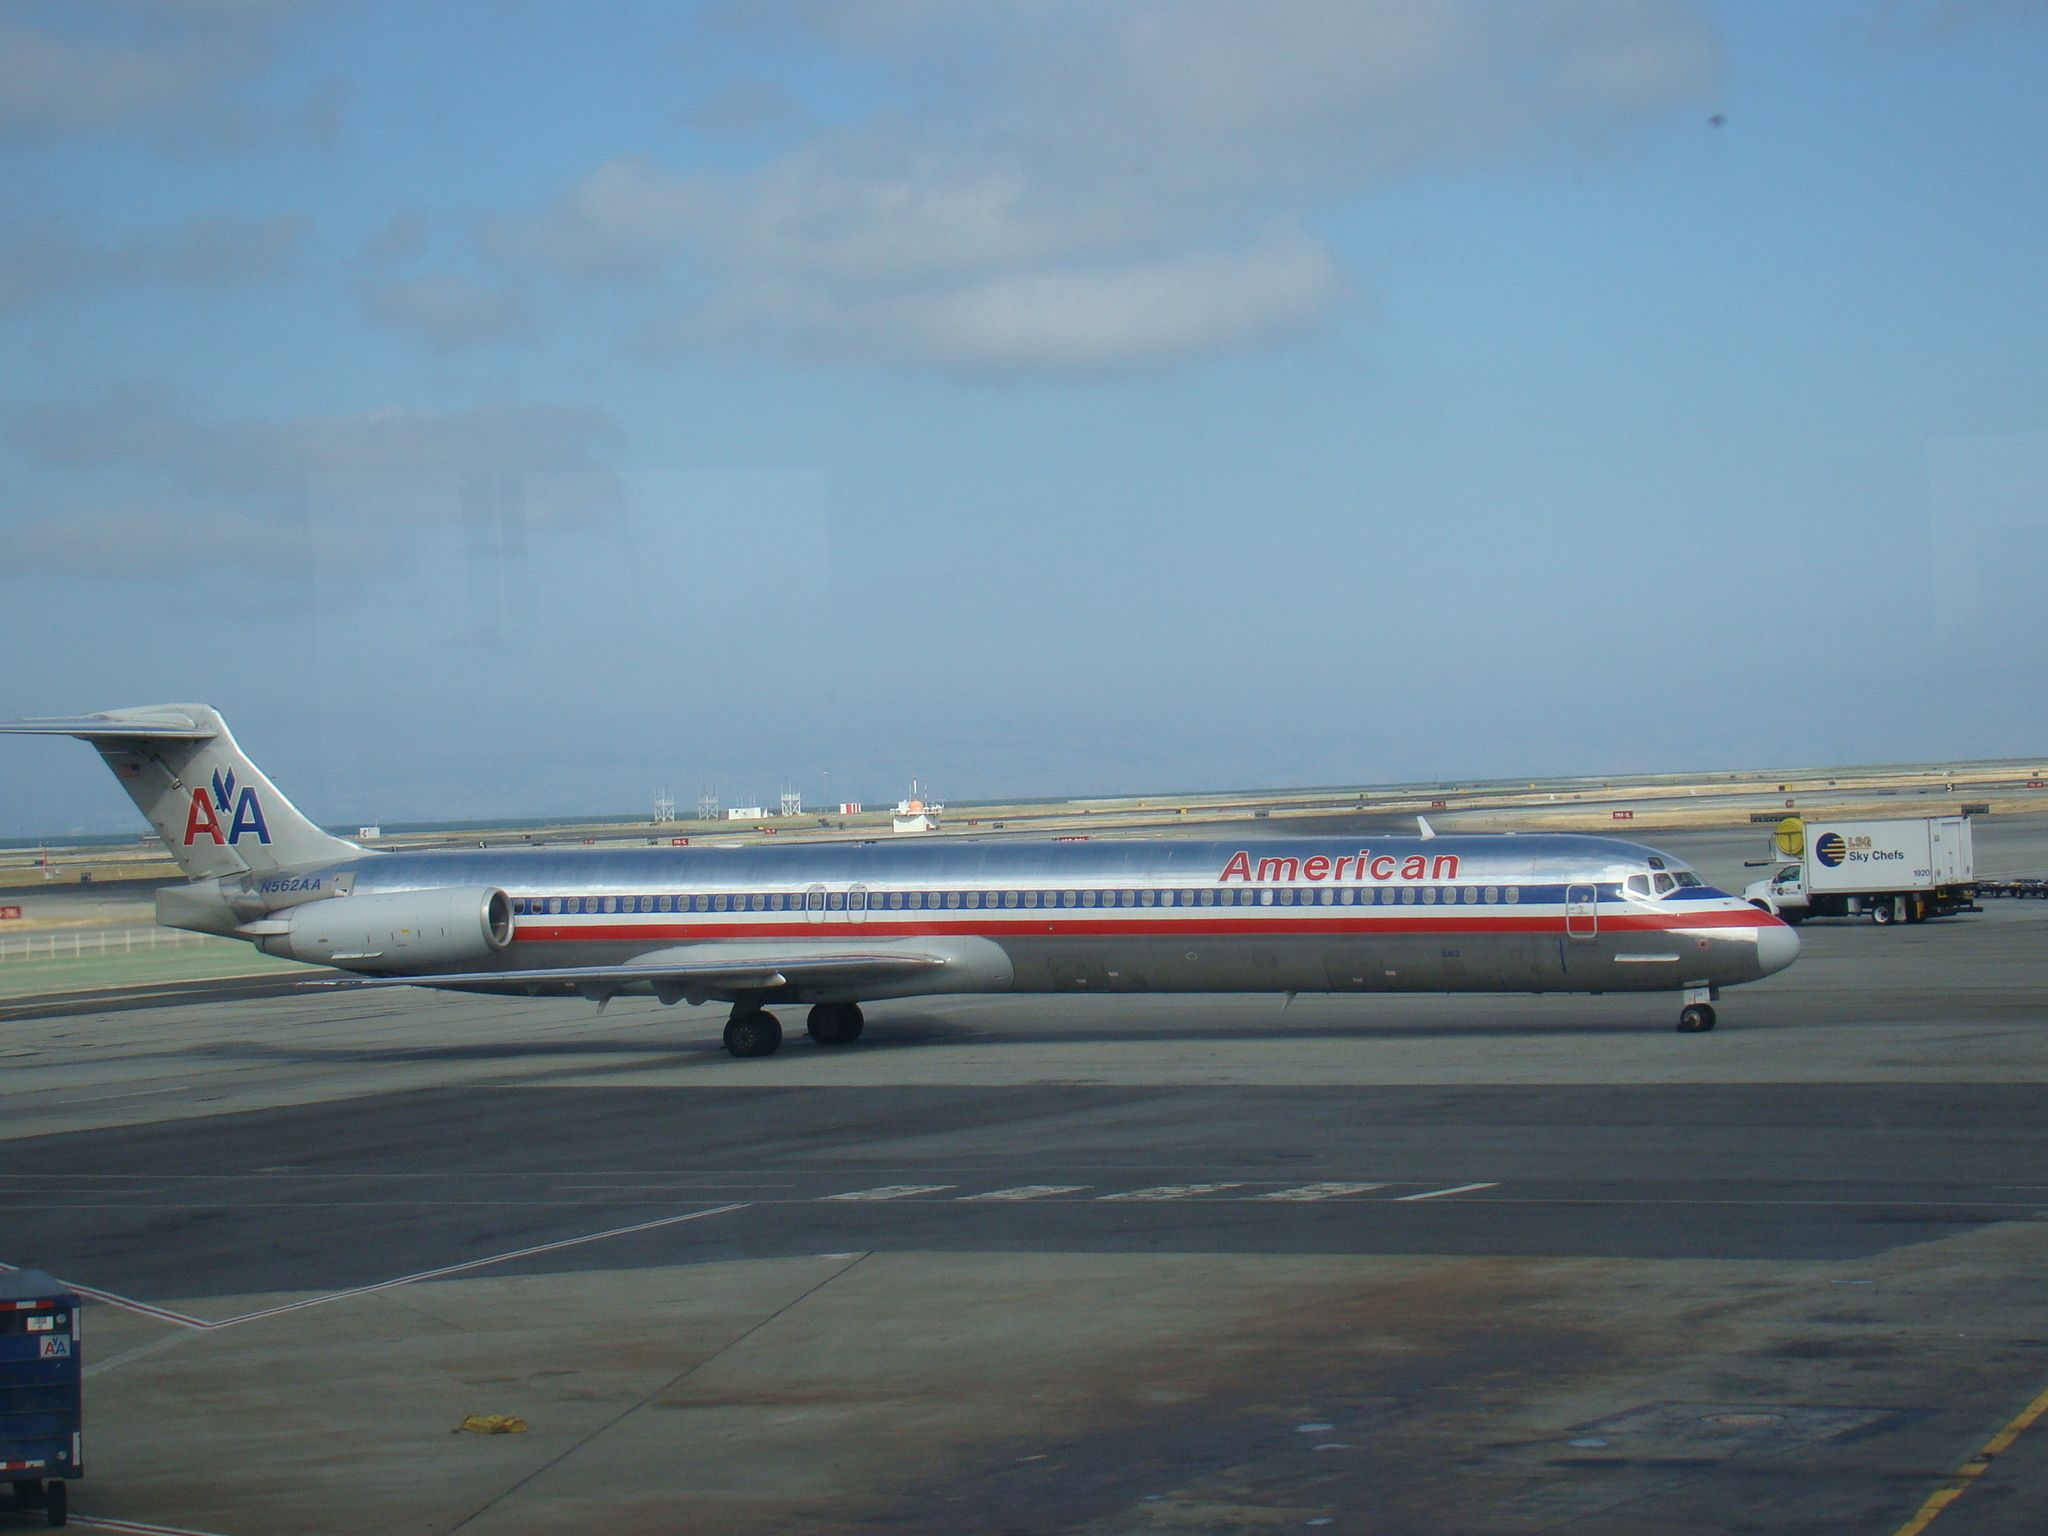 American Airlines MD80 SFO Eagle airlines, Passenger